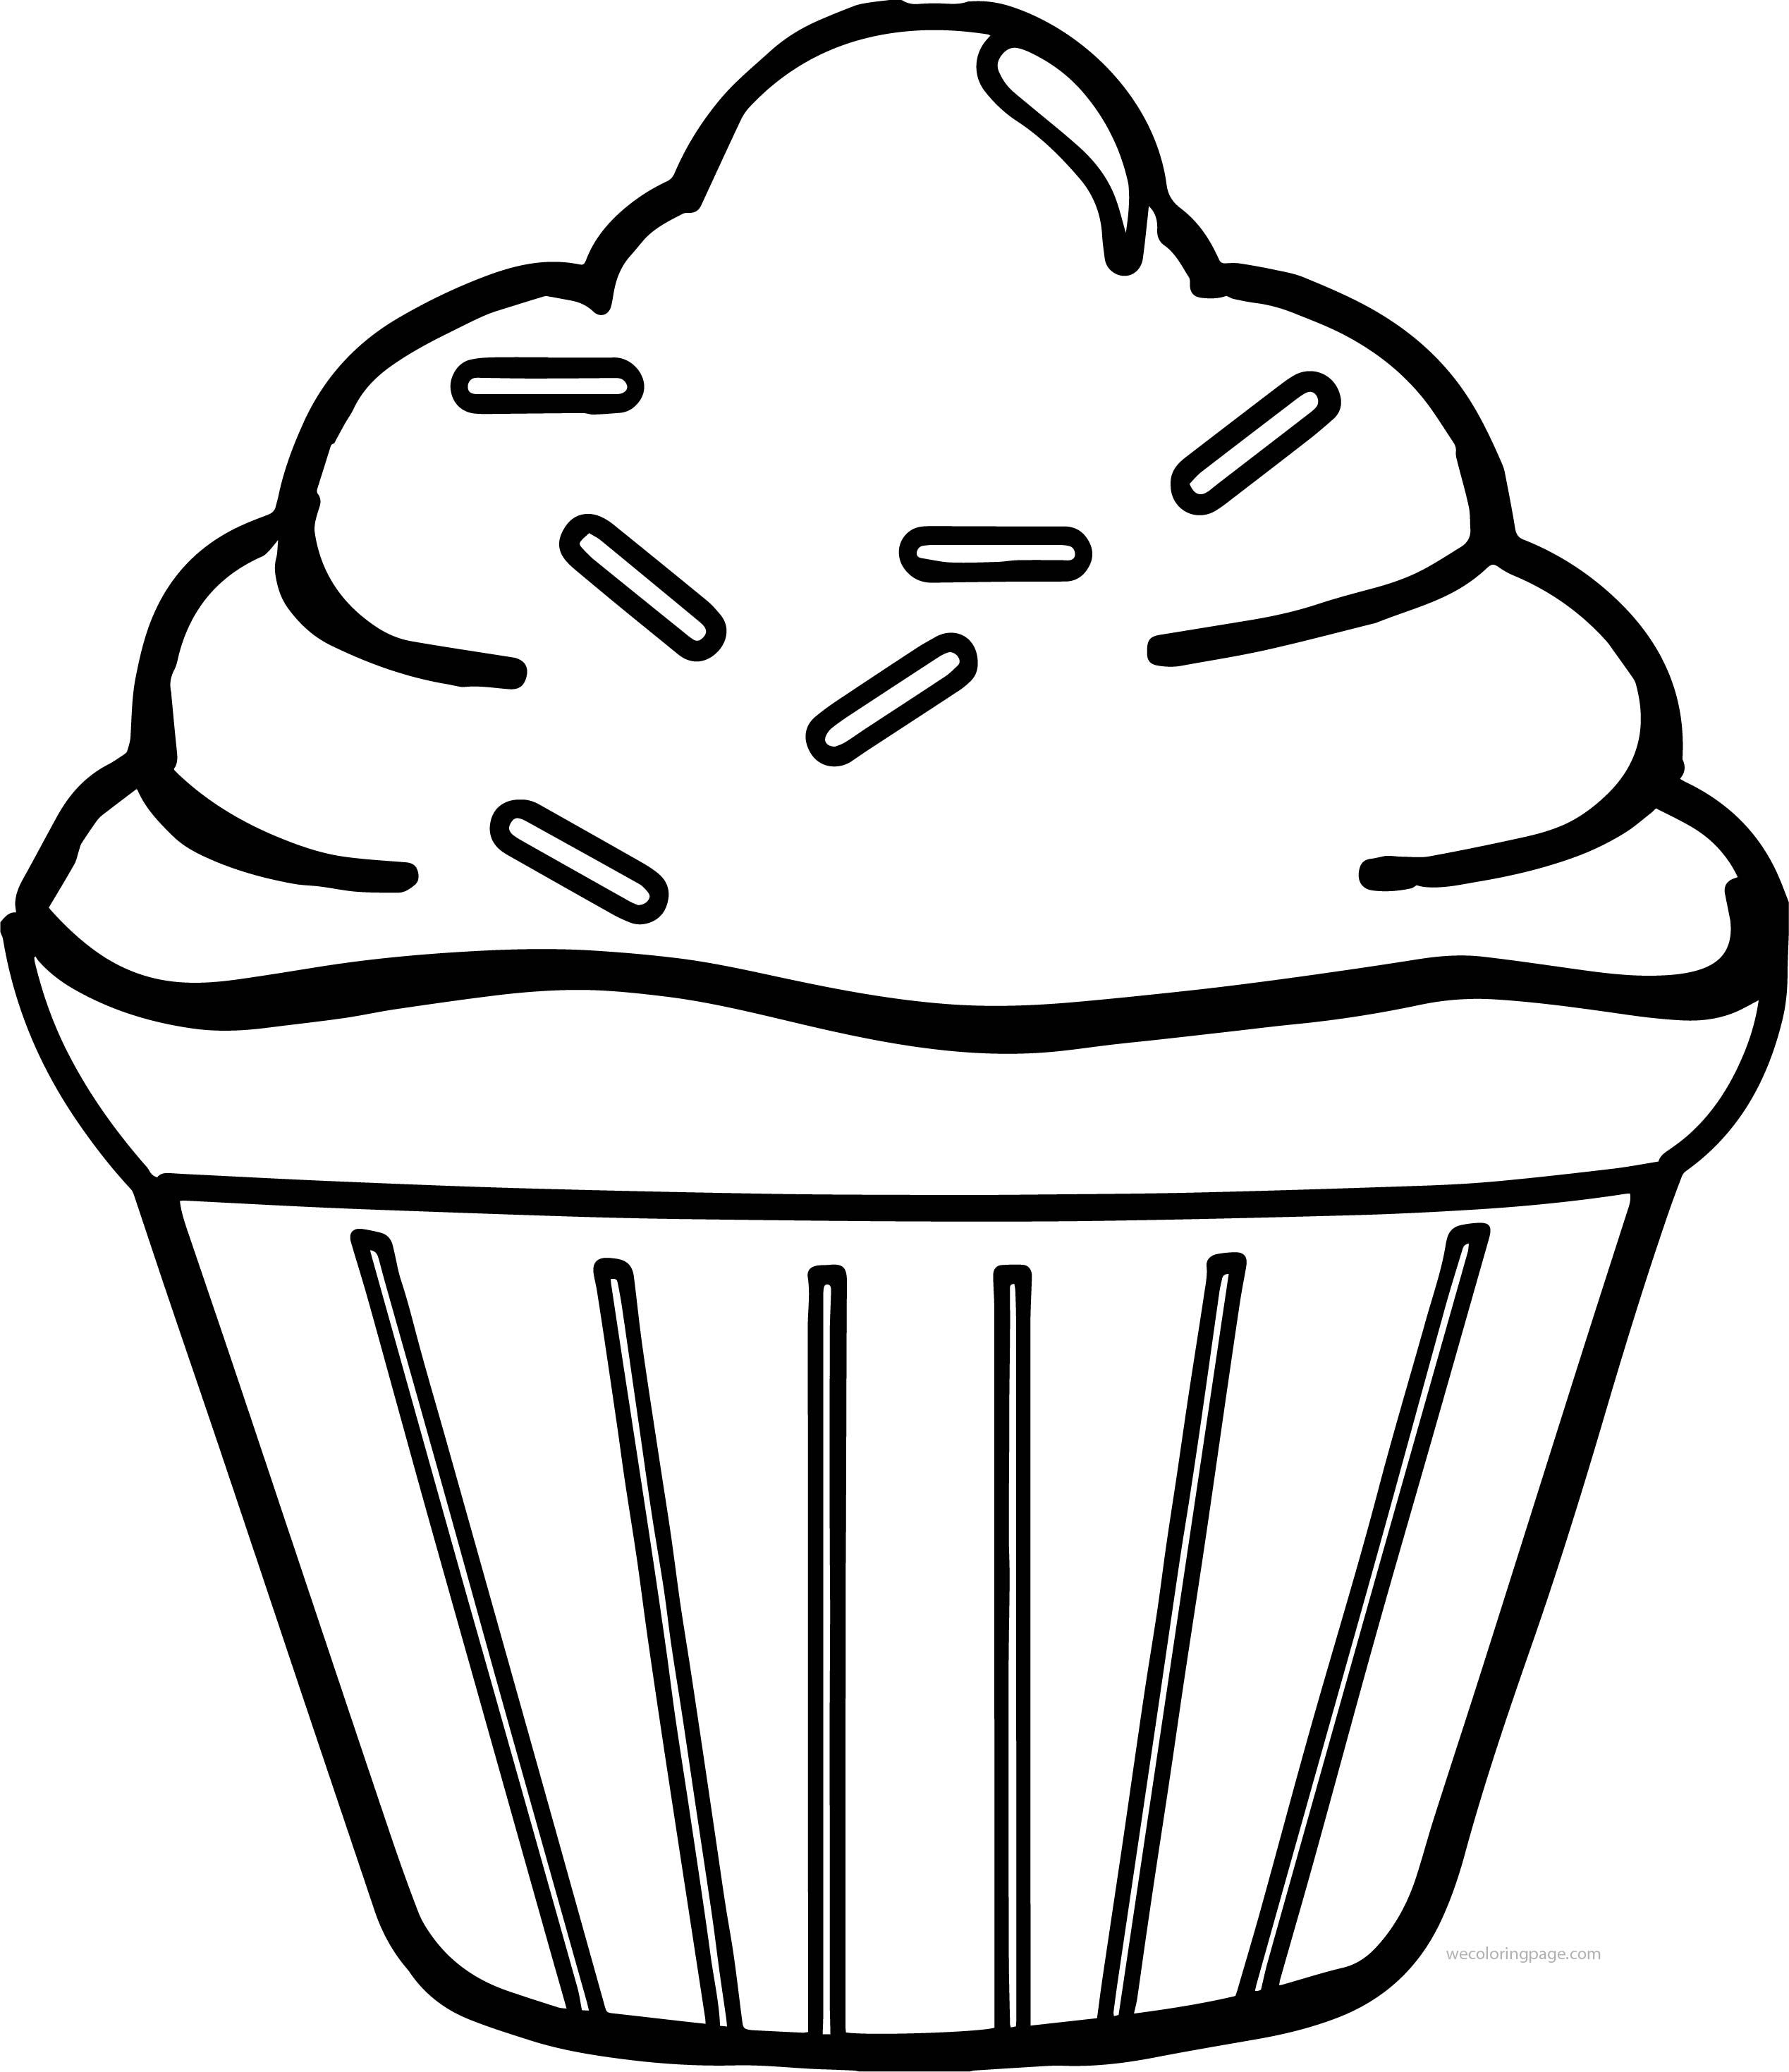 Cool Simple Cupcake Coloring Page Cupcake Coloring Pages Easy Coloring Pages Cars Coloring Pages